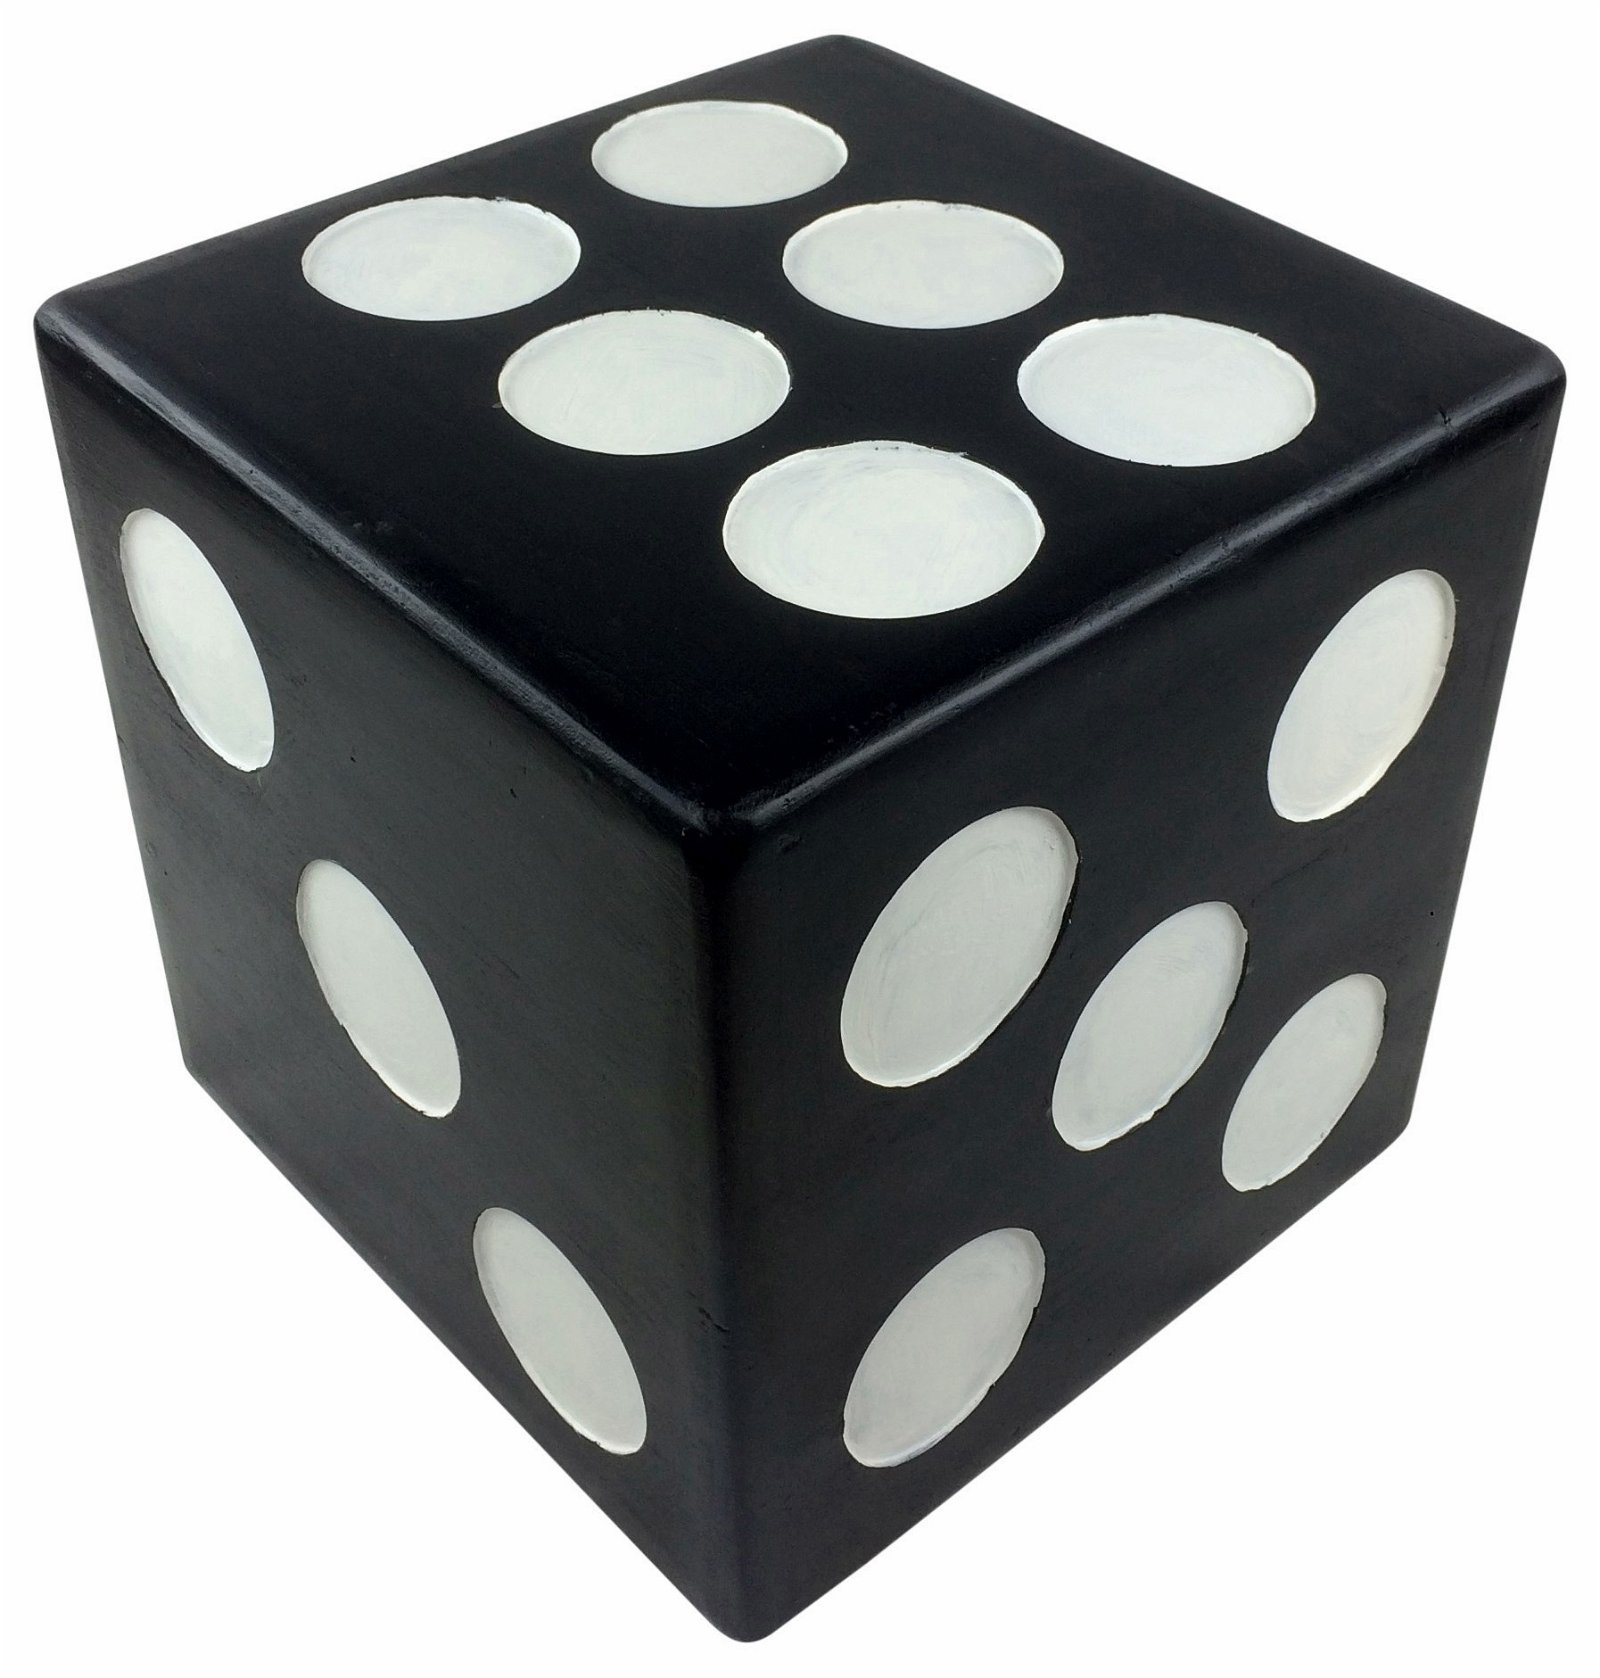 Black Wooden Dice Footstool Table 40cm